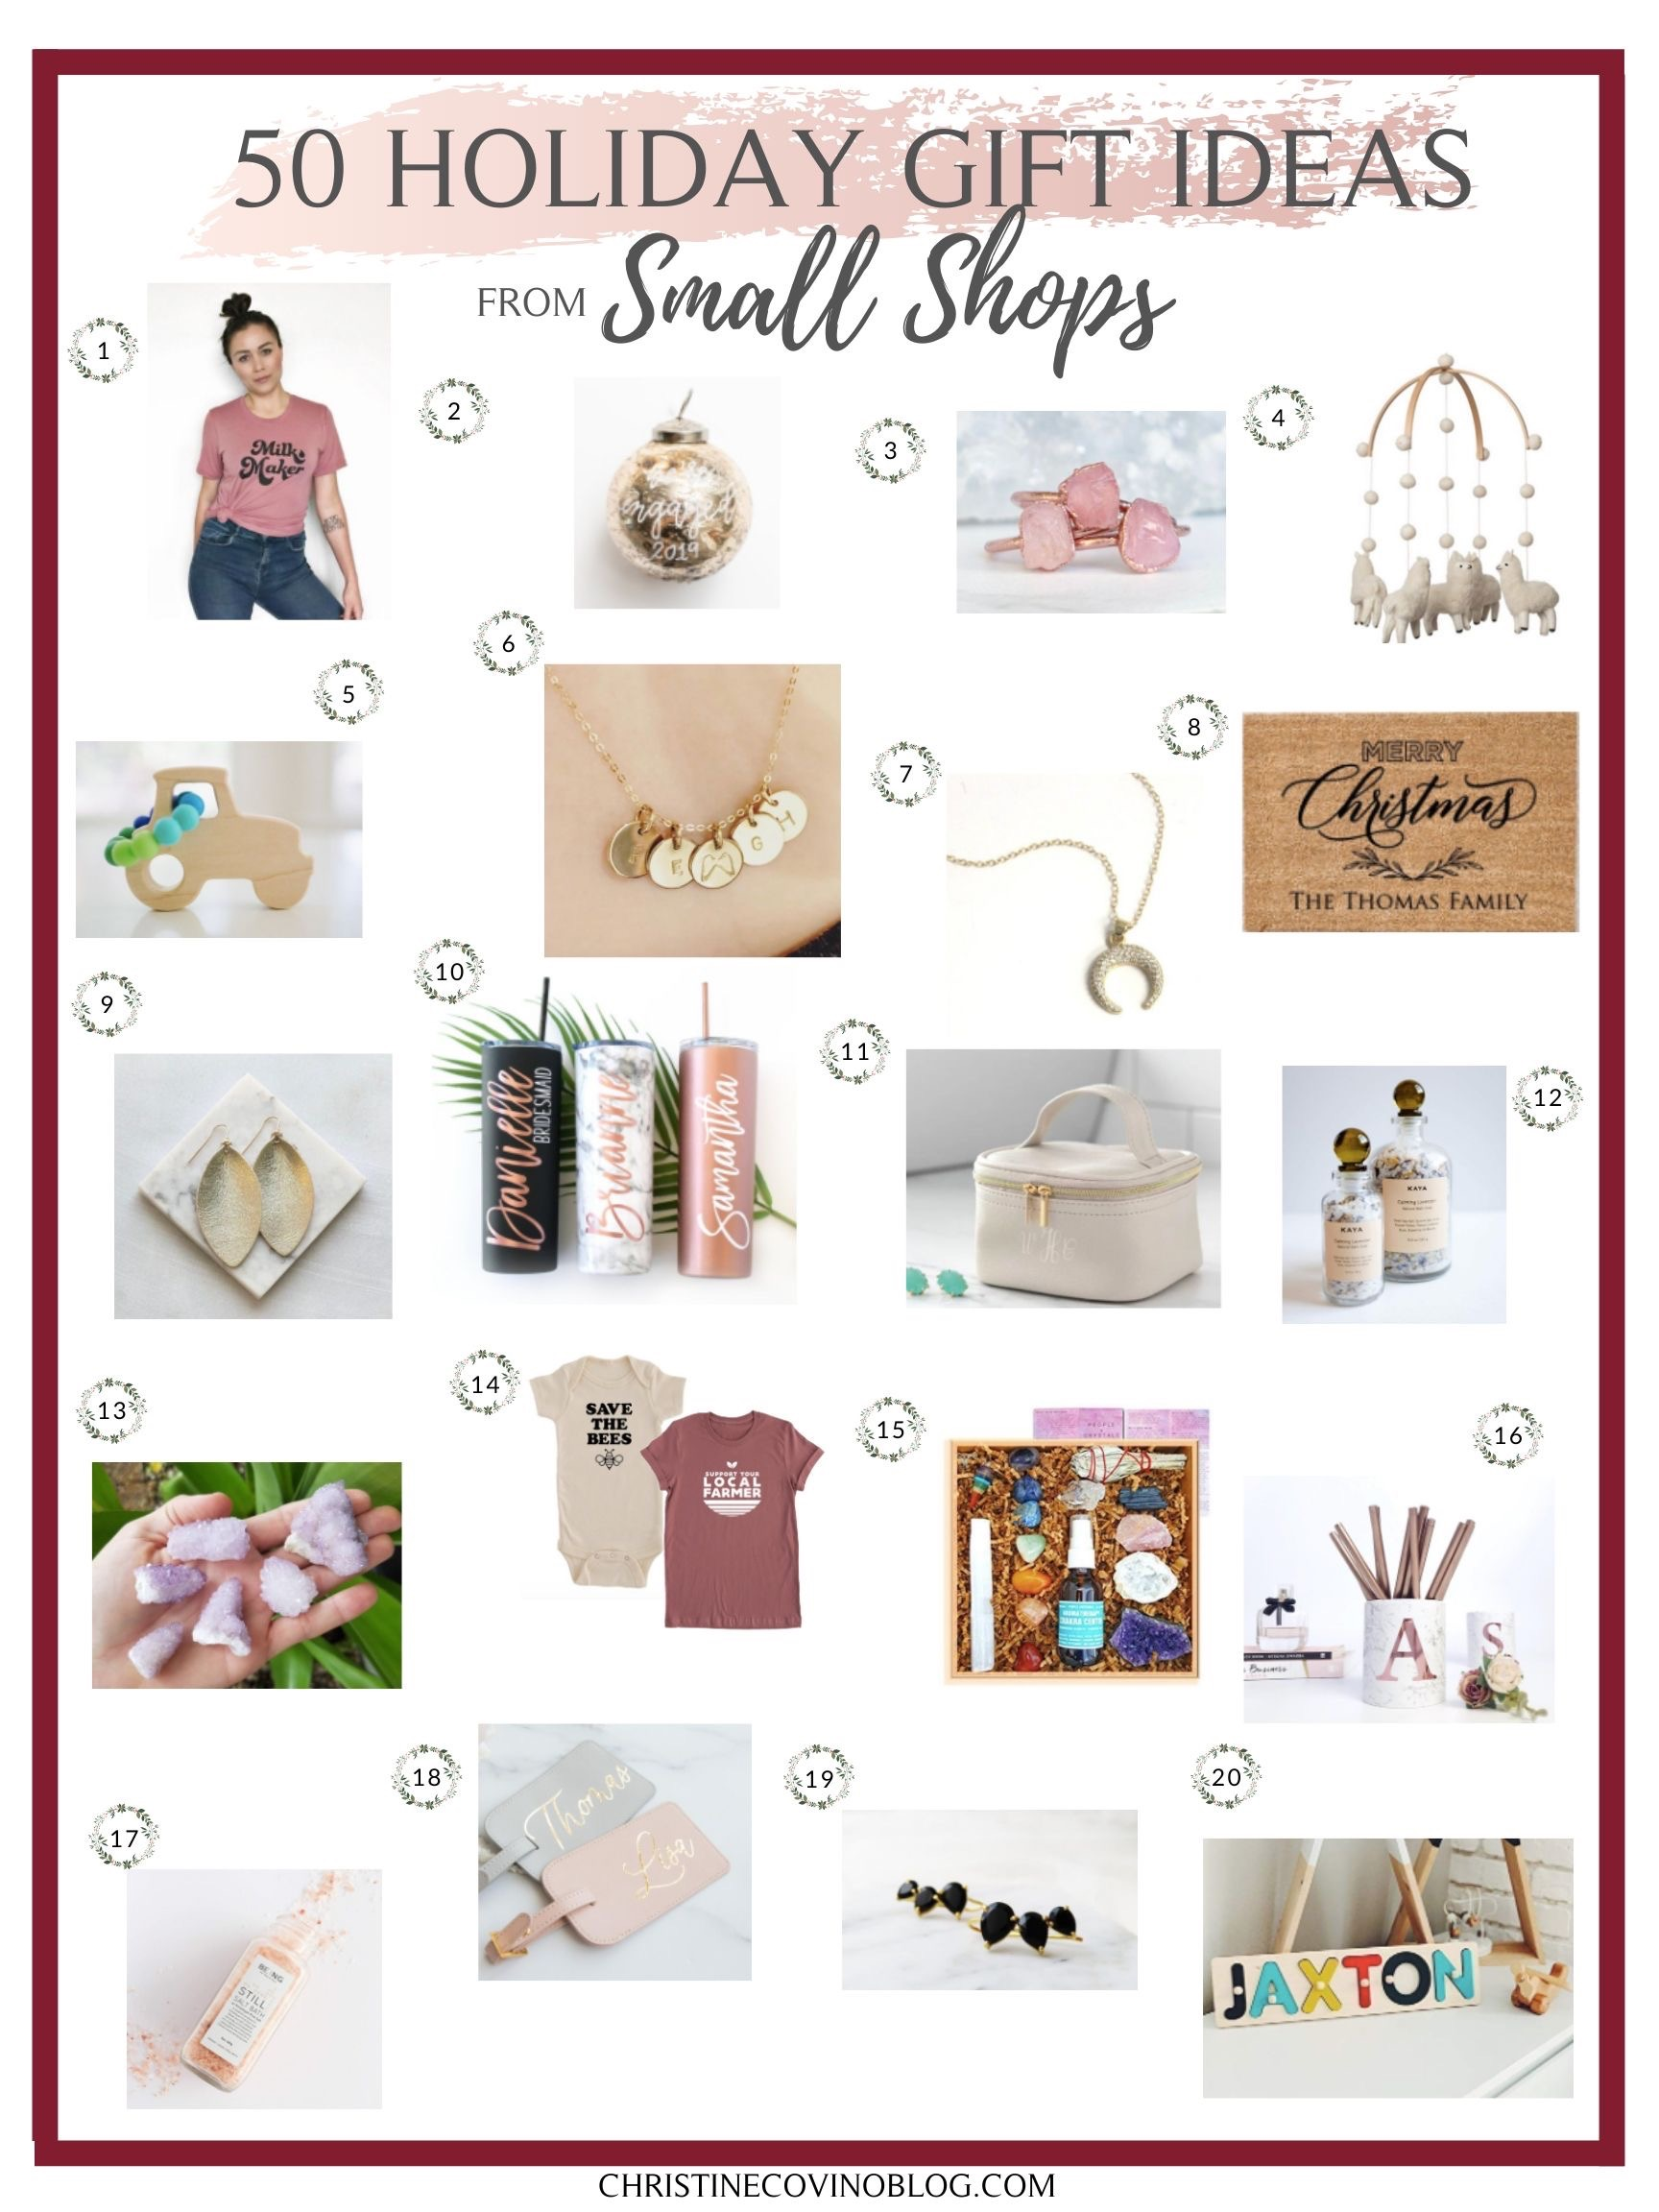 Small Shop Holiday Gift Guide- Support small businesses with this small shop holiday gift guide poster